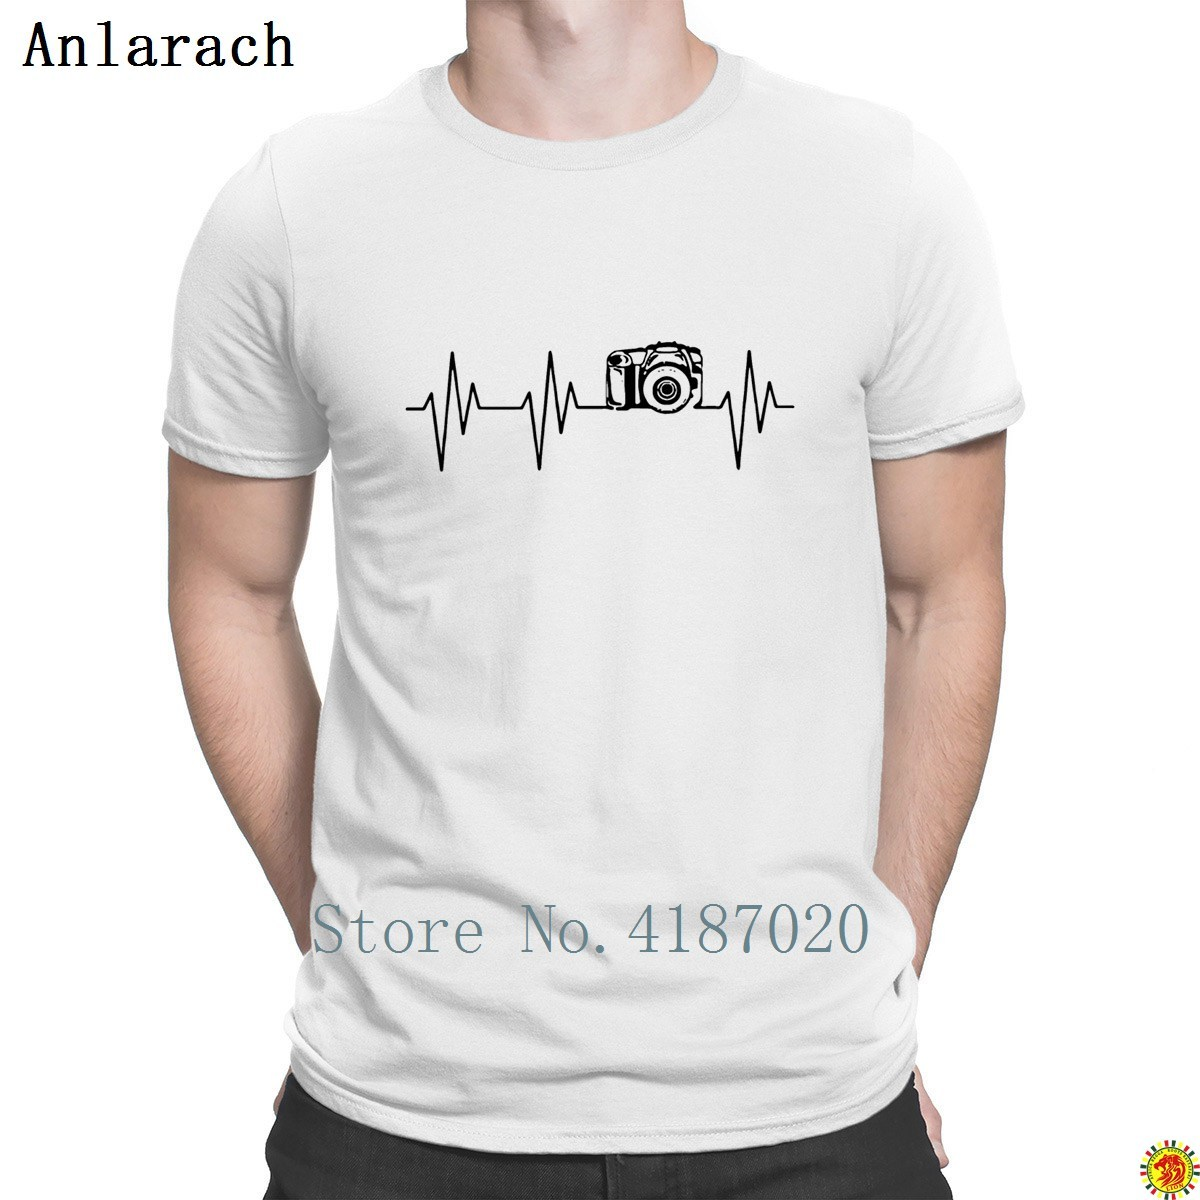 Dslr Camera Photographer T-Shirt High Quality Creative Summer Style Tshirt For Men Best HipHop Short Sleeve Anlarach Branded